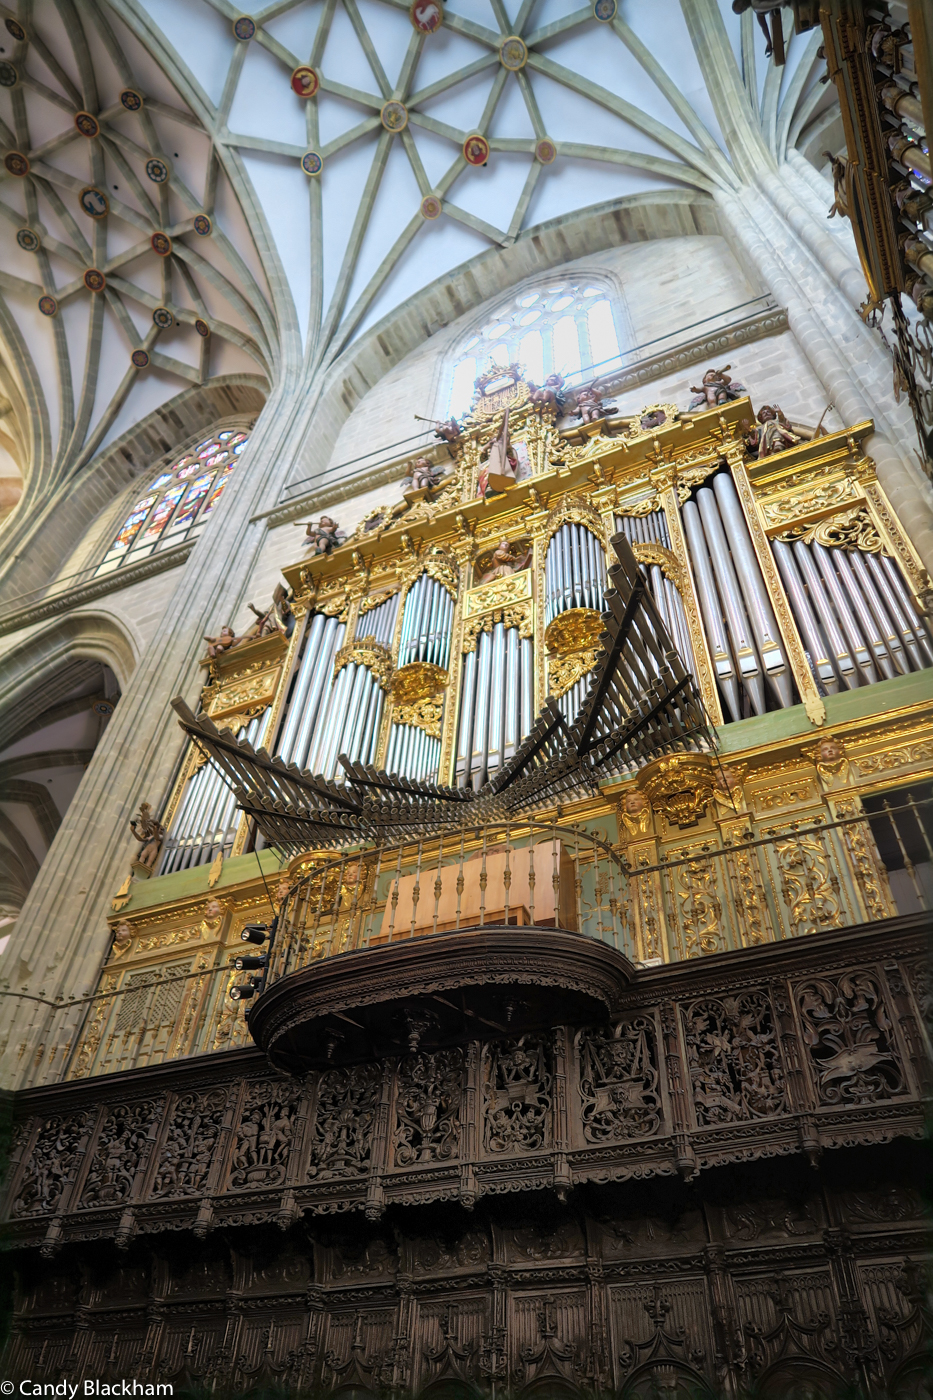 The Organ Loft above the Choir Stalls